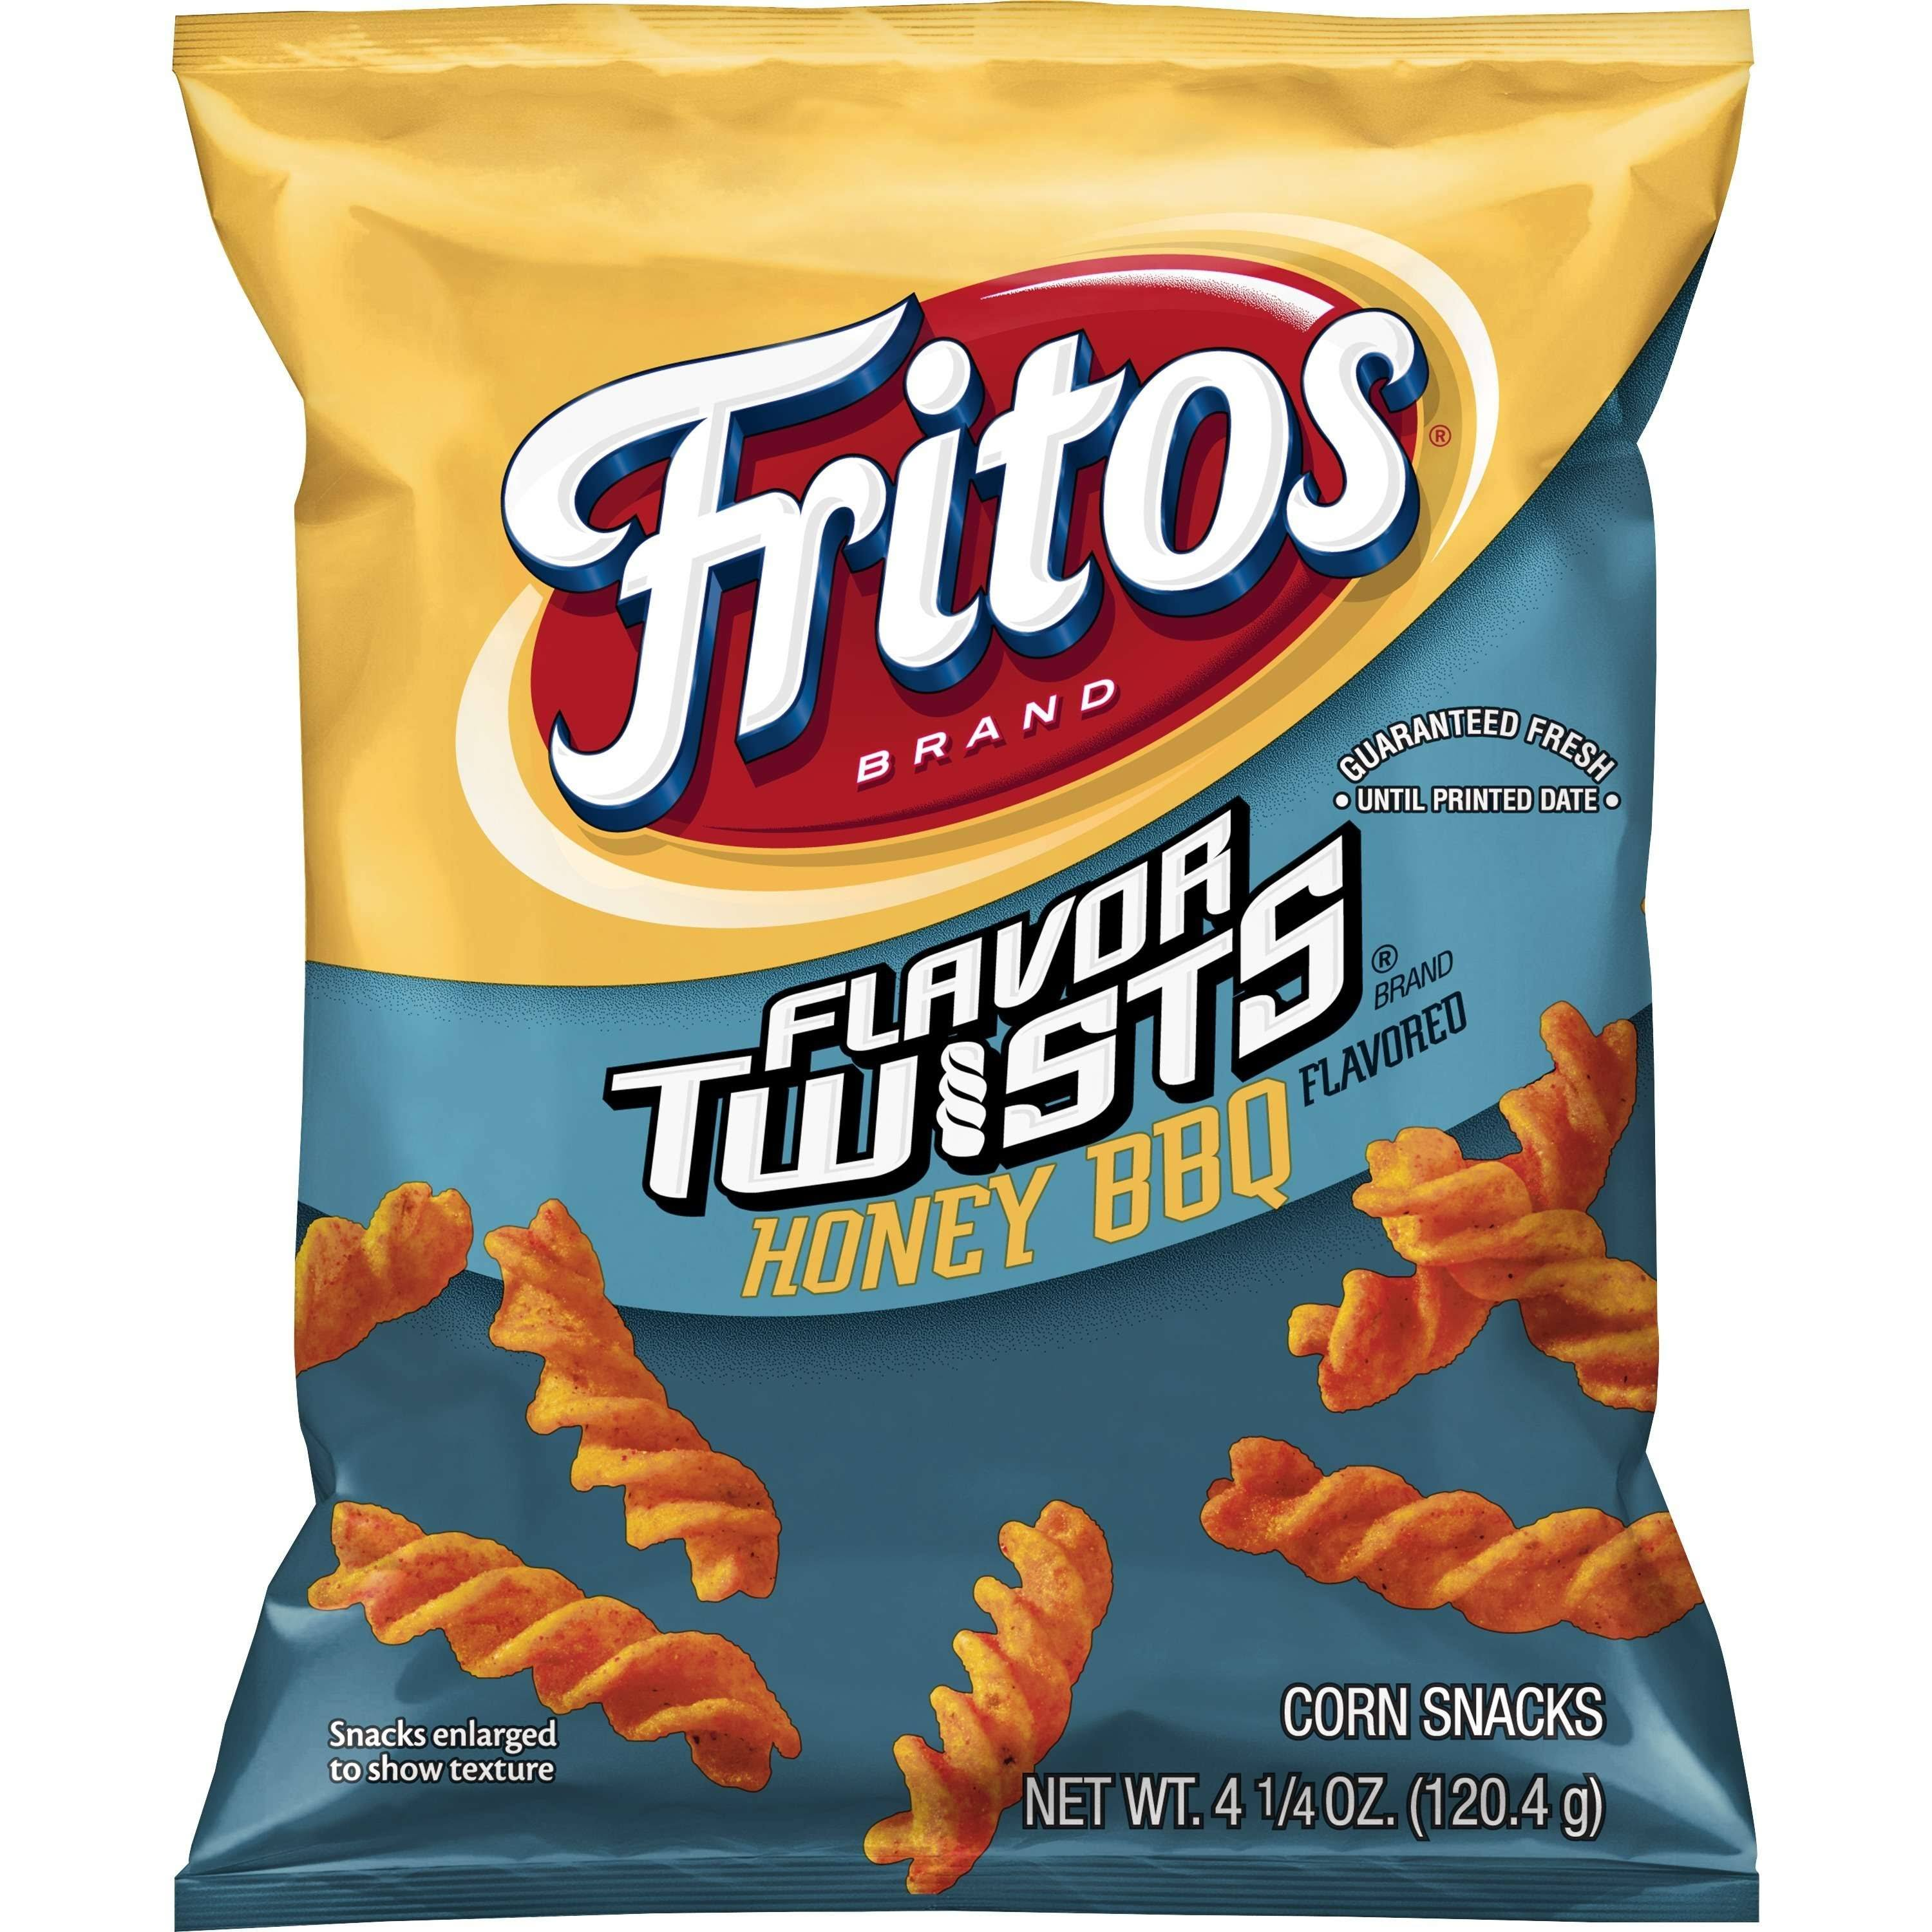 Fritos Flavor Twists Corn Snacks - Honey BBQ